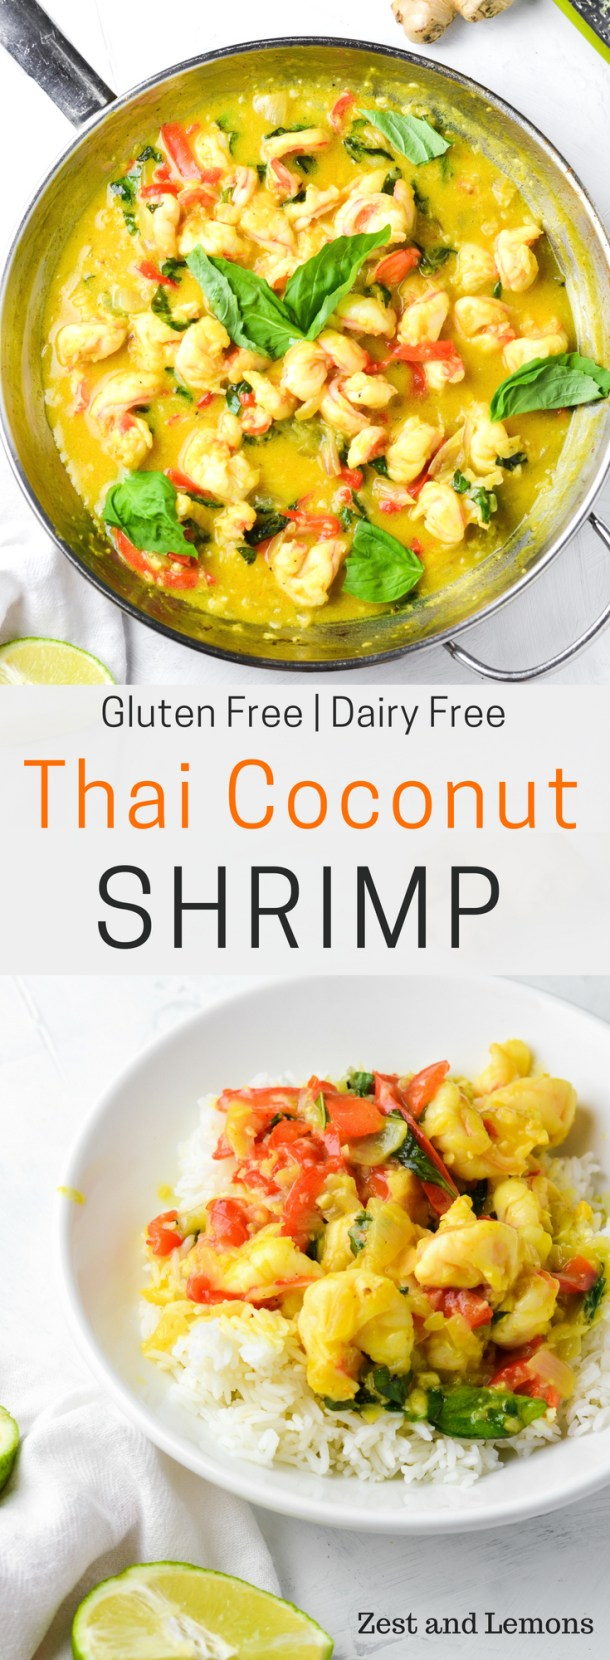 Thai coconut shrimp, a gluten free and dairy free dish prepared with a ginger garlic coconut sauce - Zest and Lemons #glutenfree #coconutshrimp #weeknightmeals